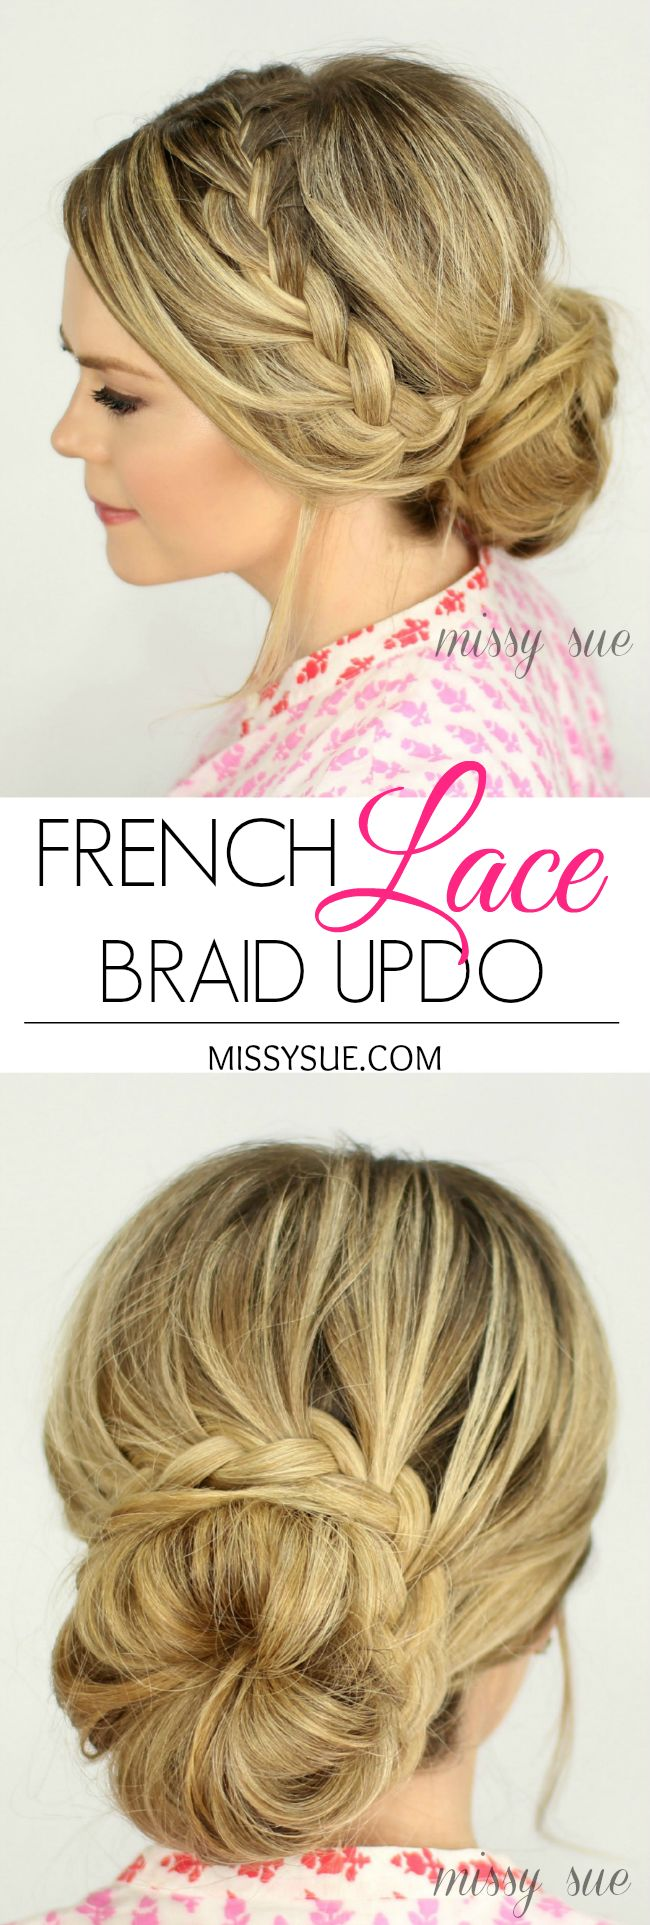 French Lace Braid Updo